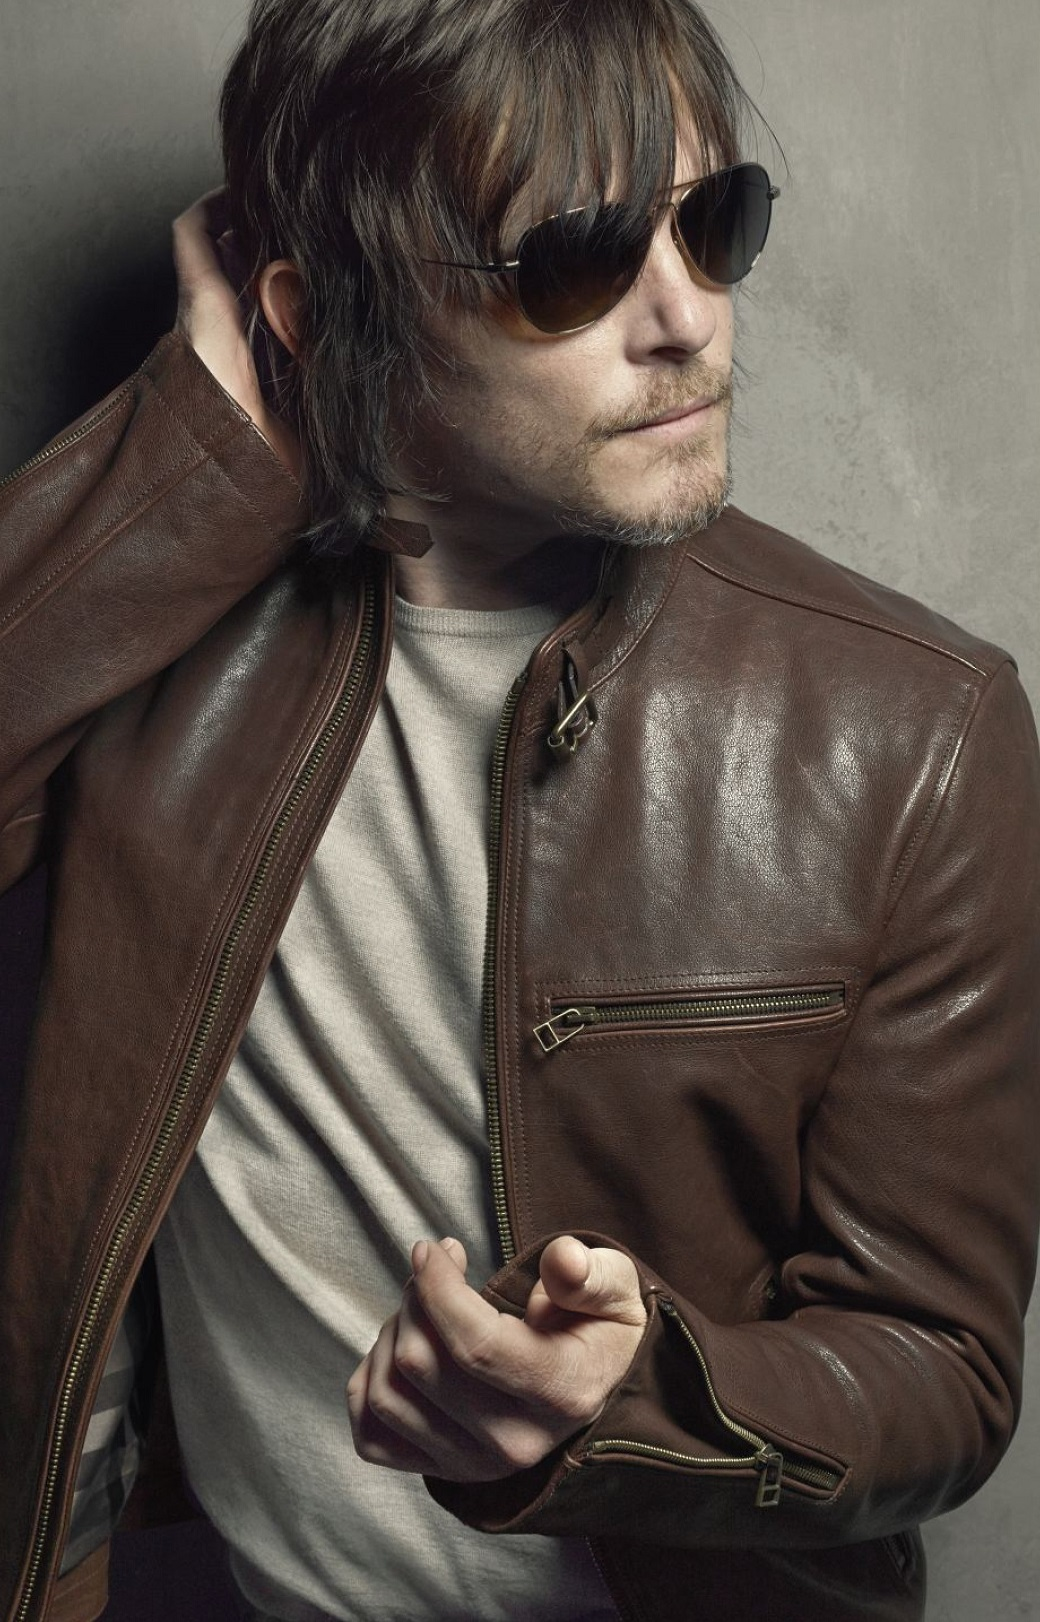 Photo Of Norman Reedus 679714 Upload Date 2014 03 17 Number Votes 4 There Are 97 More Pics In The Gallery